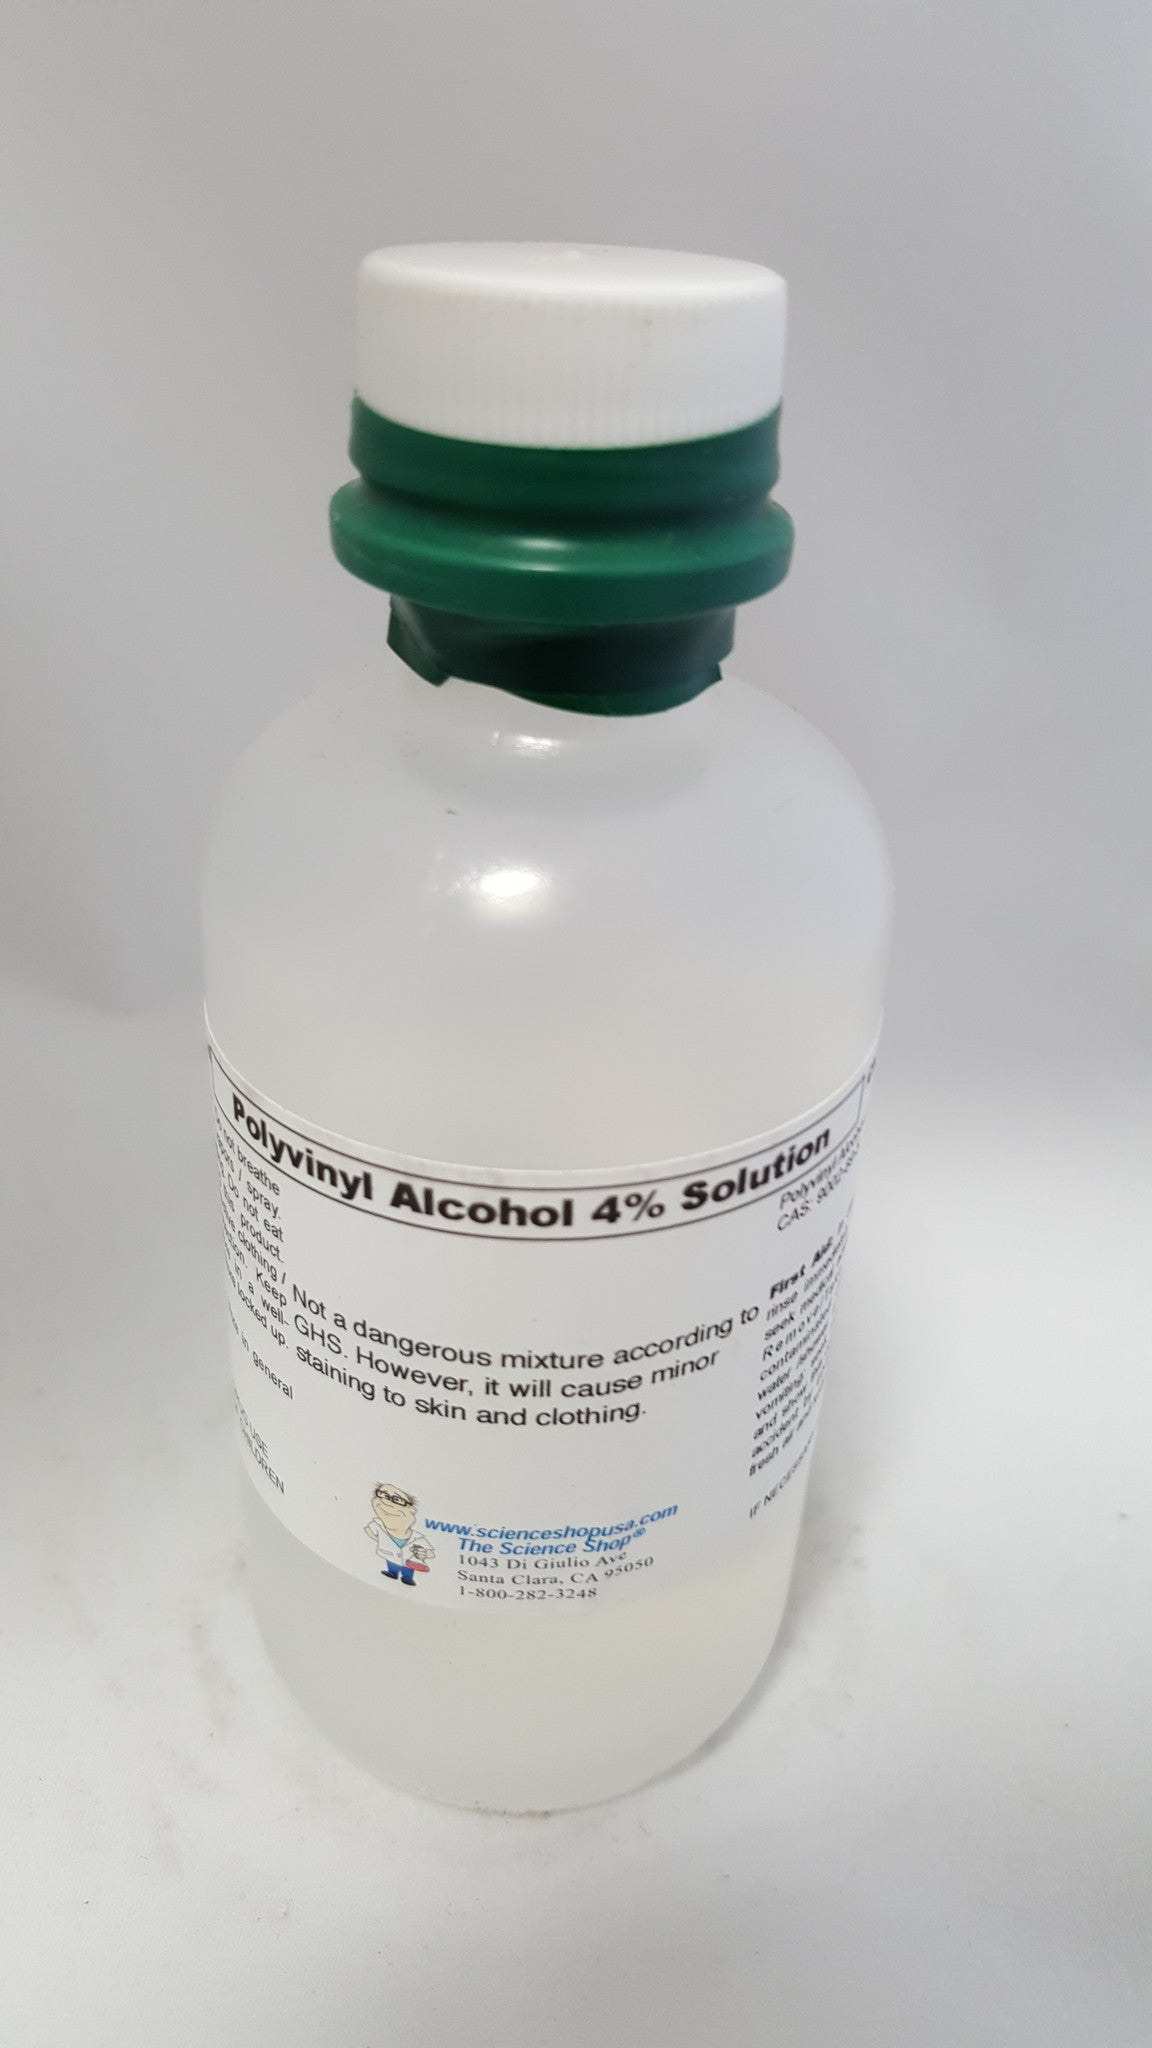 PVA, POLYVINYL ALCOHOL, 4%, PRESERVED SOLUTION, 100ML